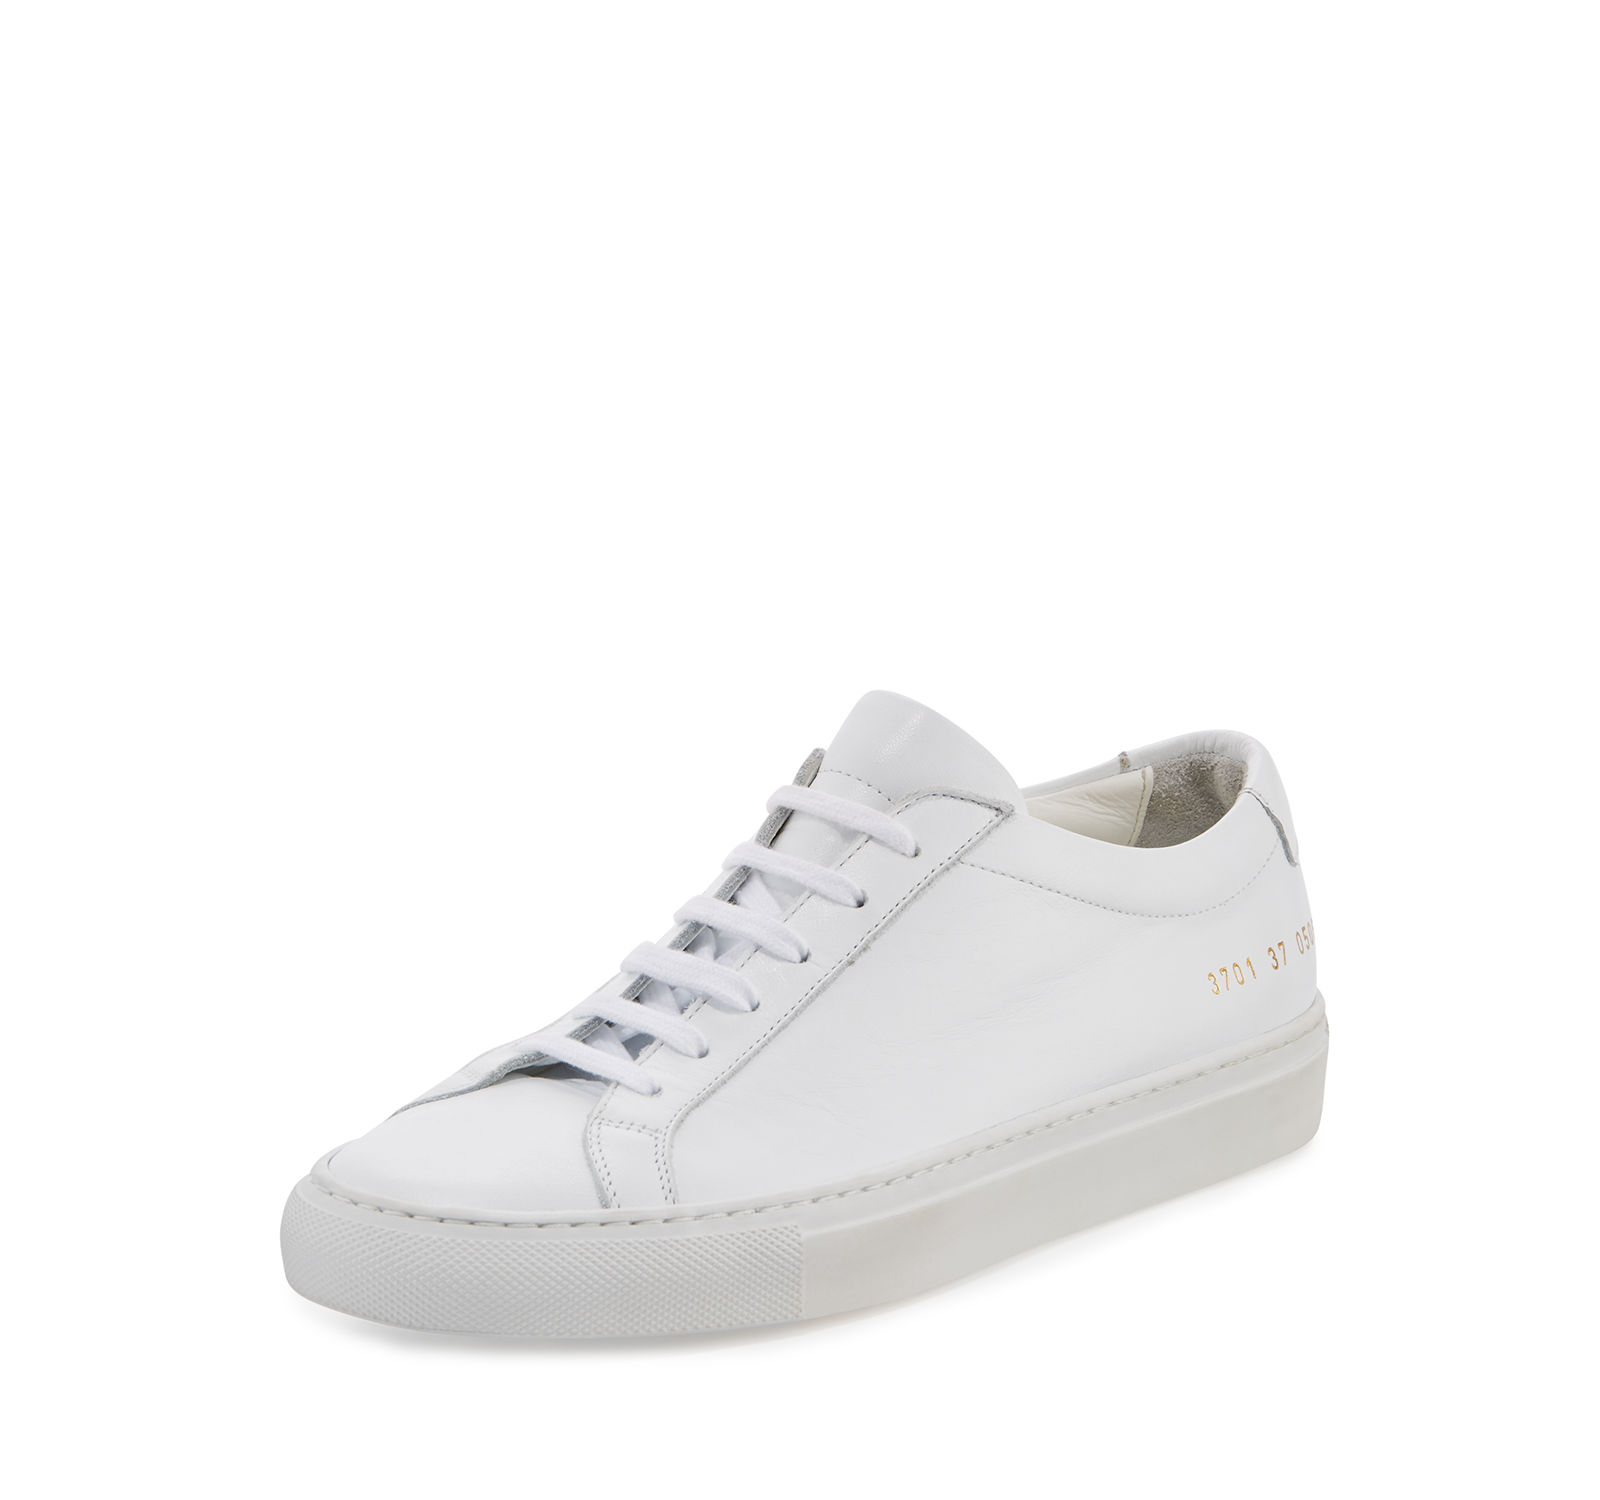 Common Sneakers Projects Achilles Leather Low-Top Sneakers Common 133bd6